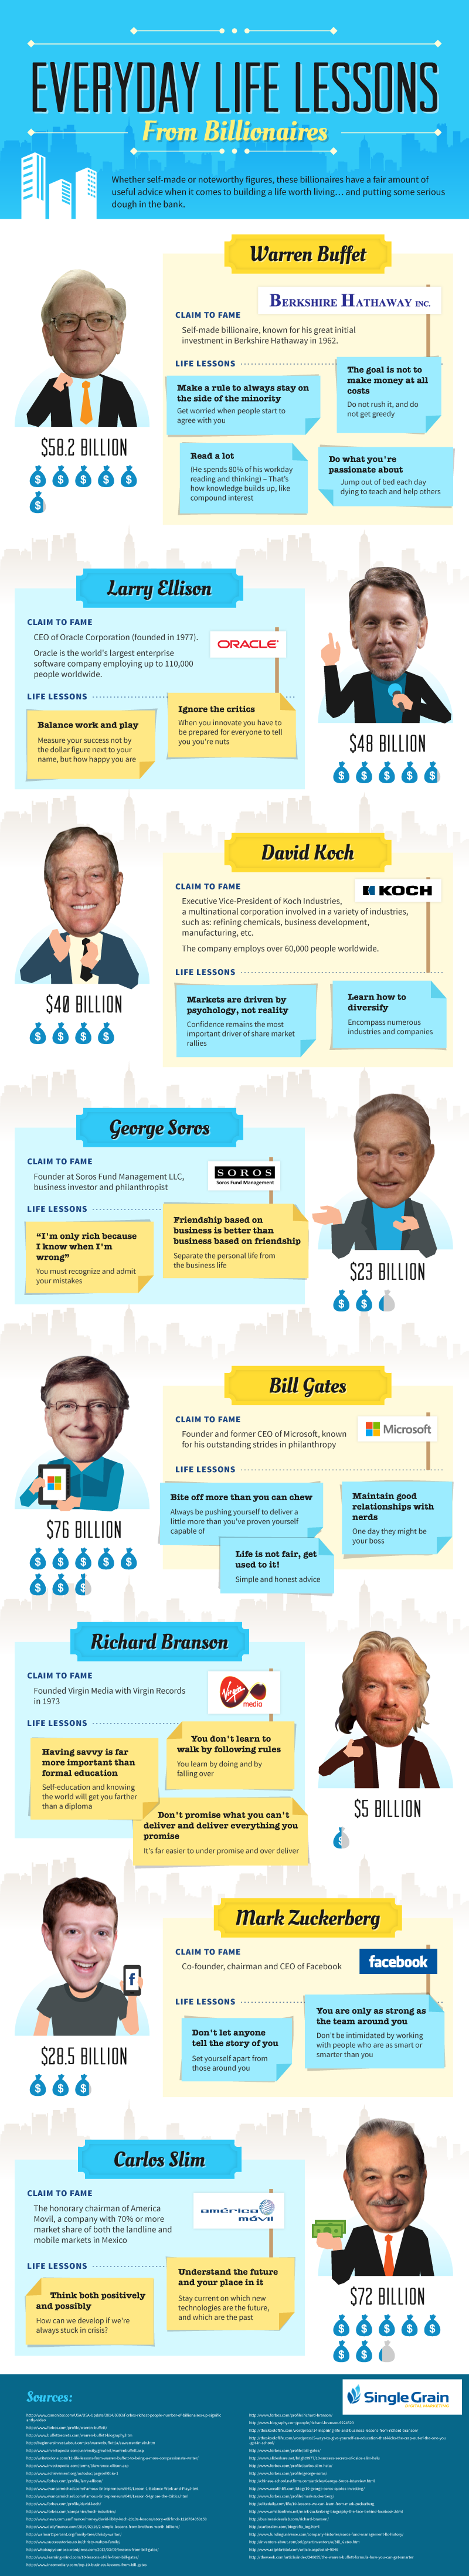 Life-Lessons-from-Billionaires